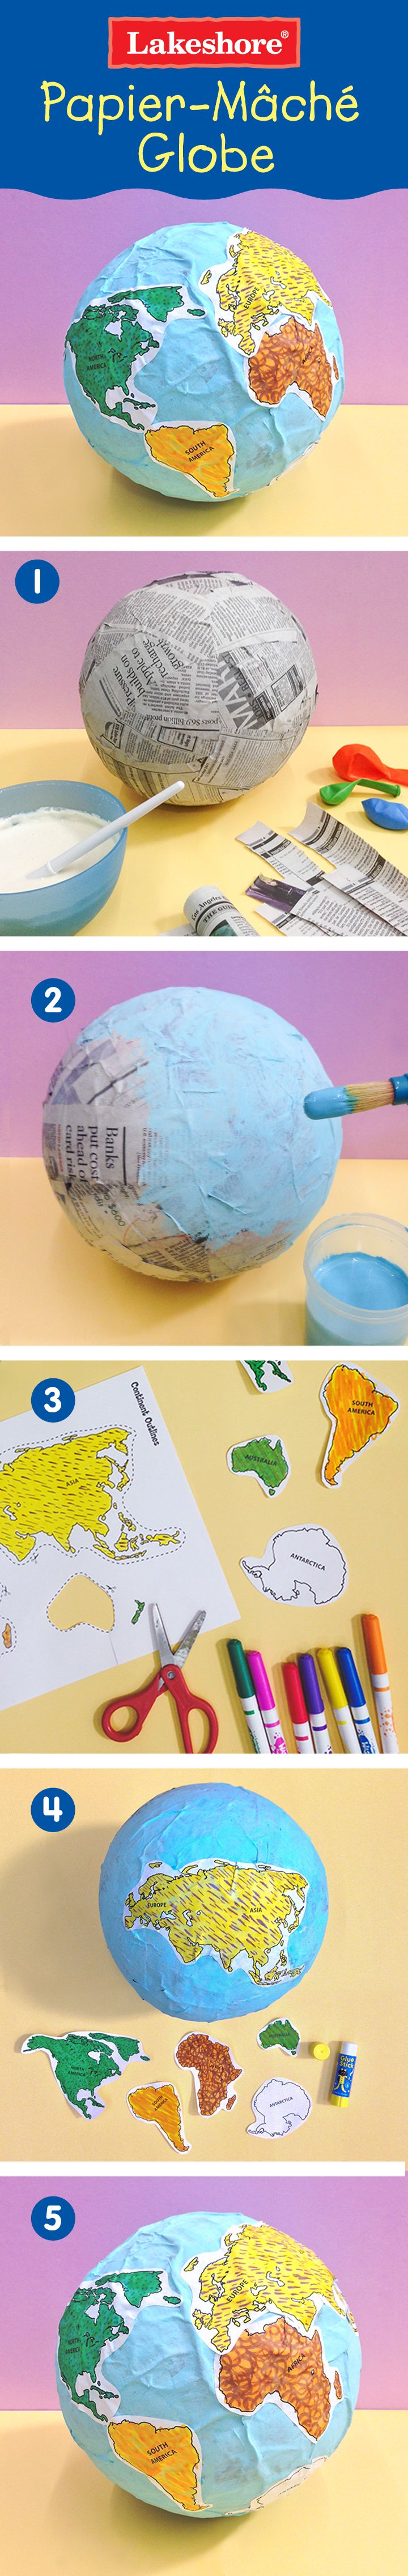 Paper mache globe project. Use with Apologi a Around the World in 180 Days homeschool history and geography curriculim. Geography lesson, history lesson, multi-level teaching, http://shop.apologia.com/12-around-the-world